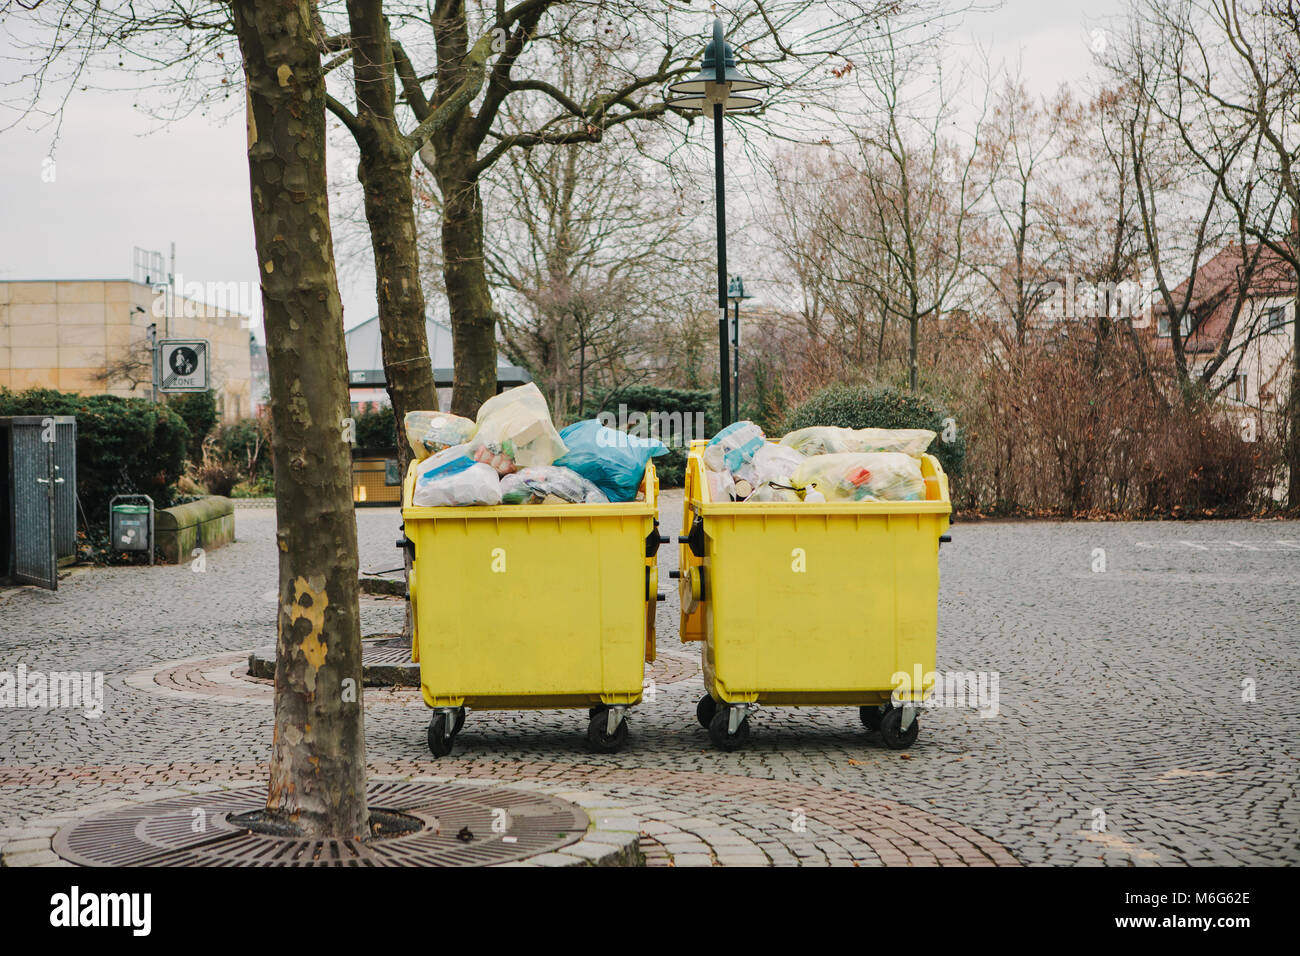 domestic garbage collection stockfotos domestic garbage collection bilder alamy. Black Bedroom Furniture Sets. Home Design Ideas